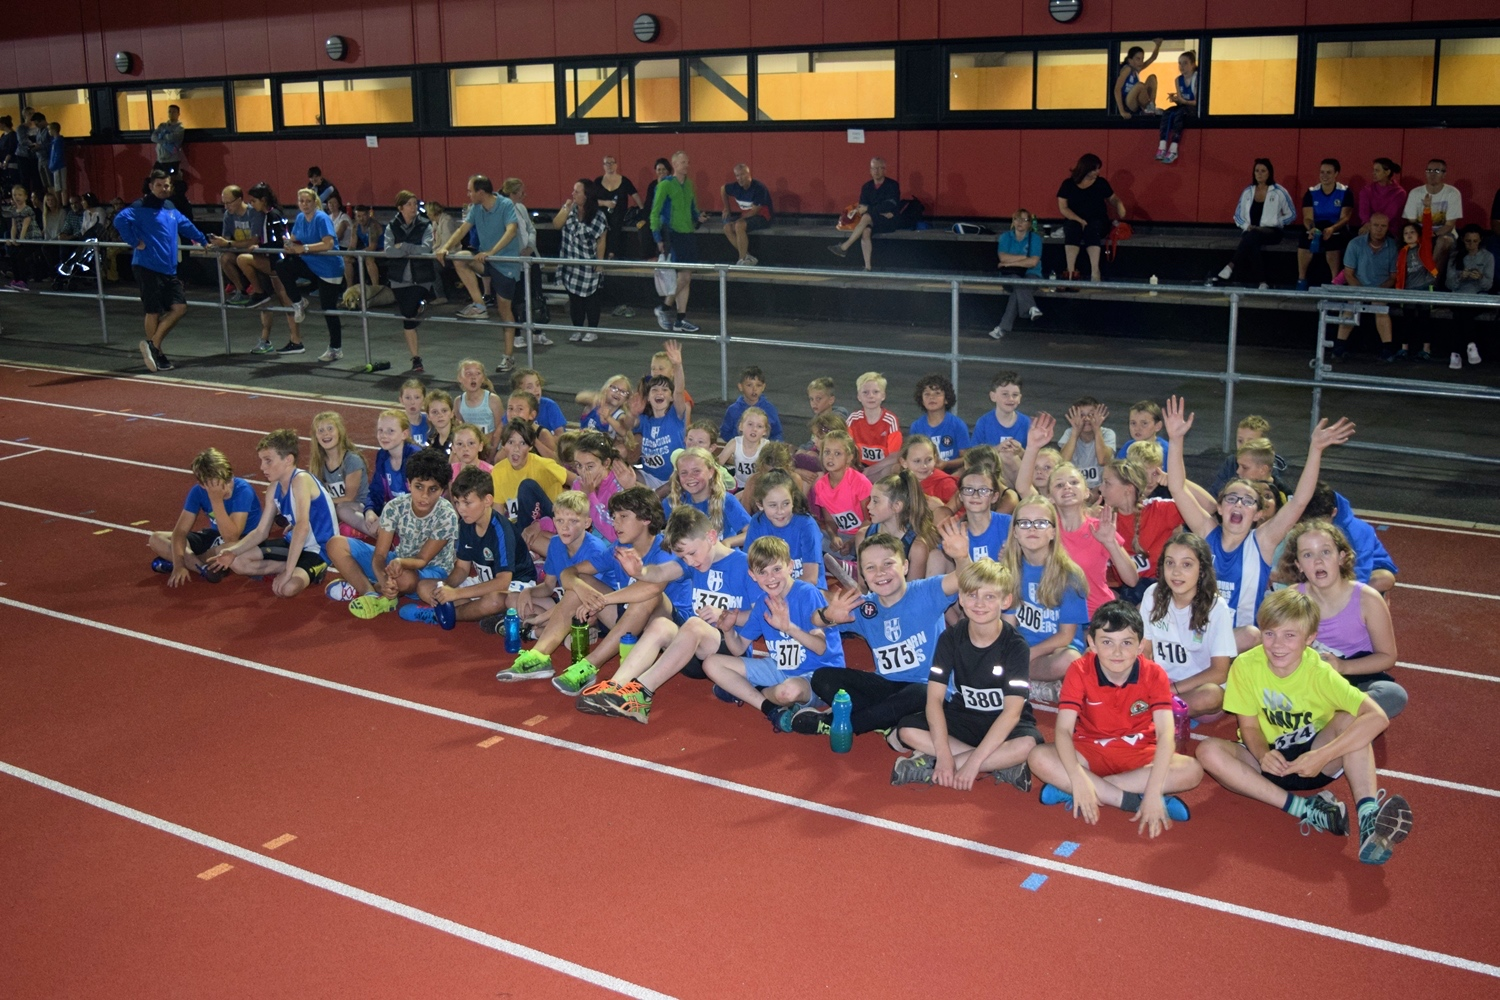 Harriers Sportshall youngsters shine in Quadrathlon